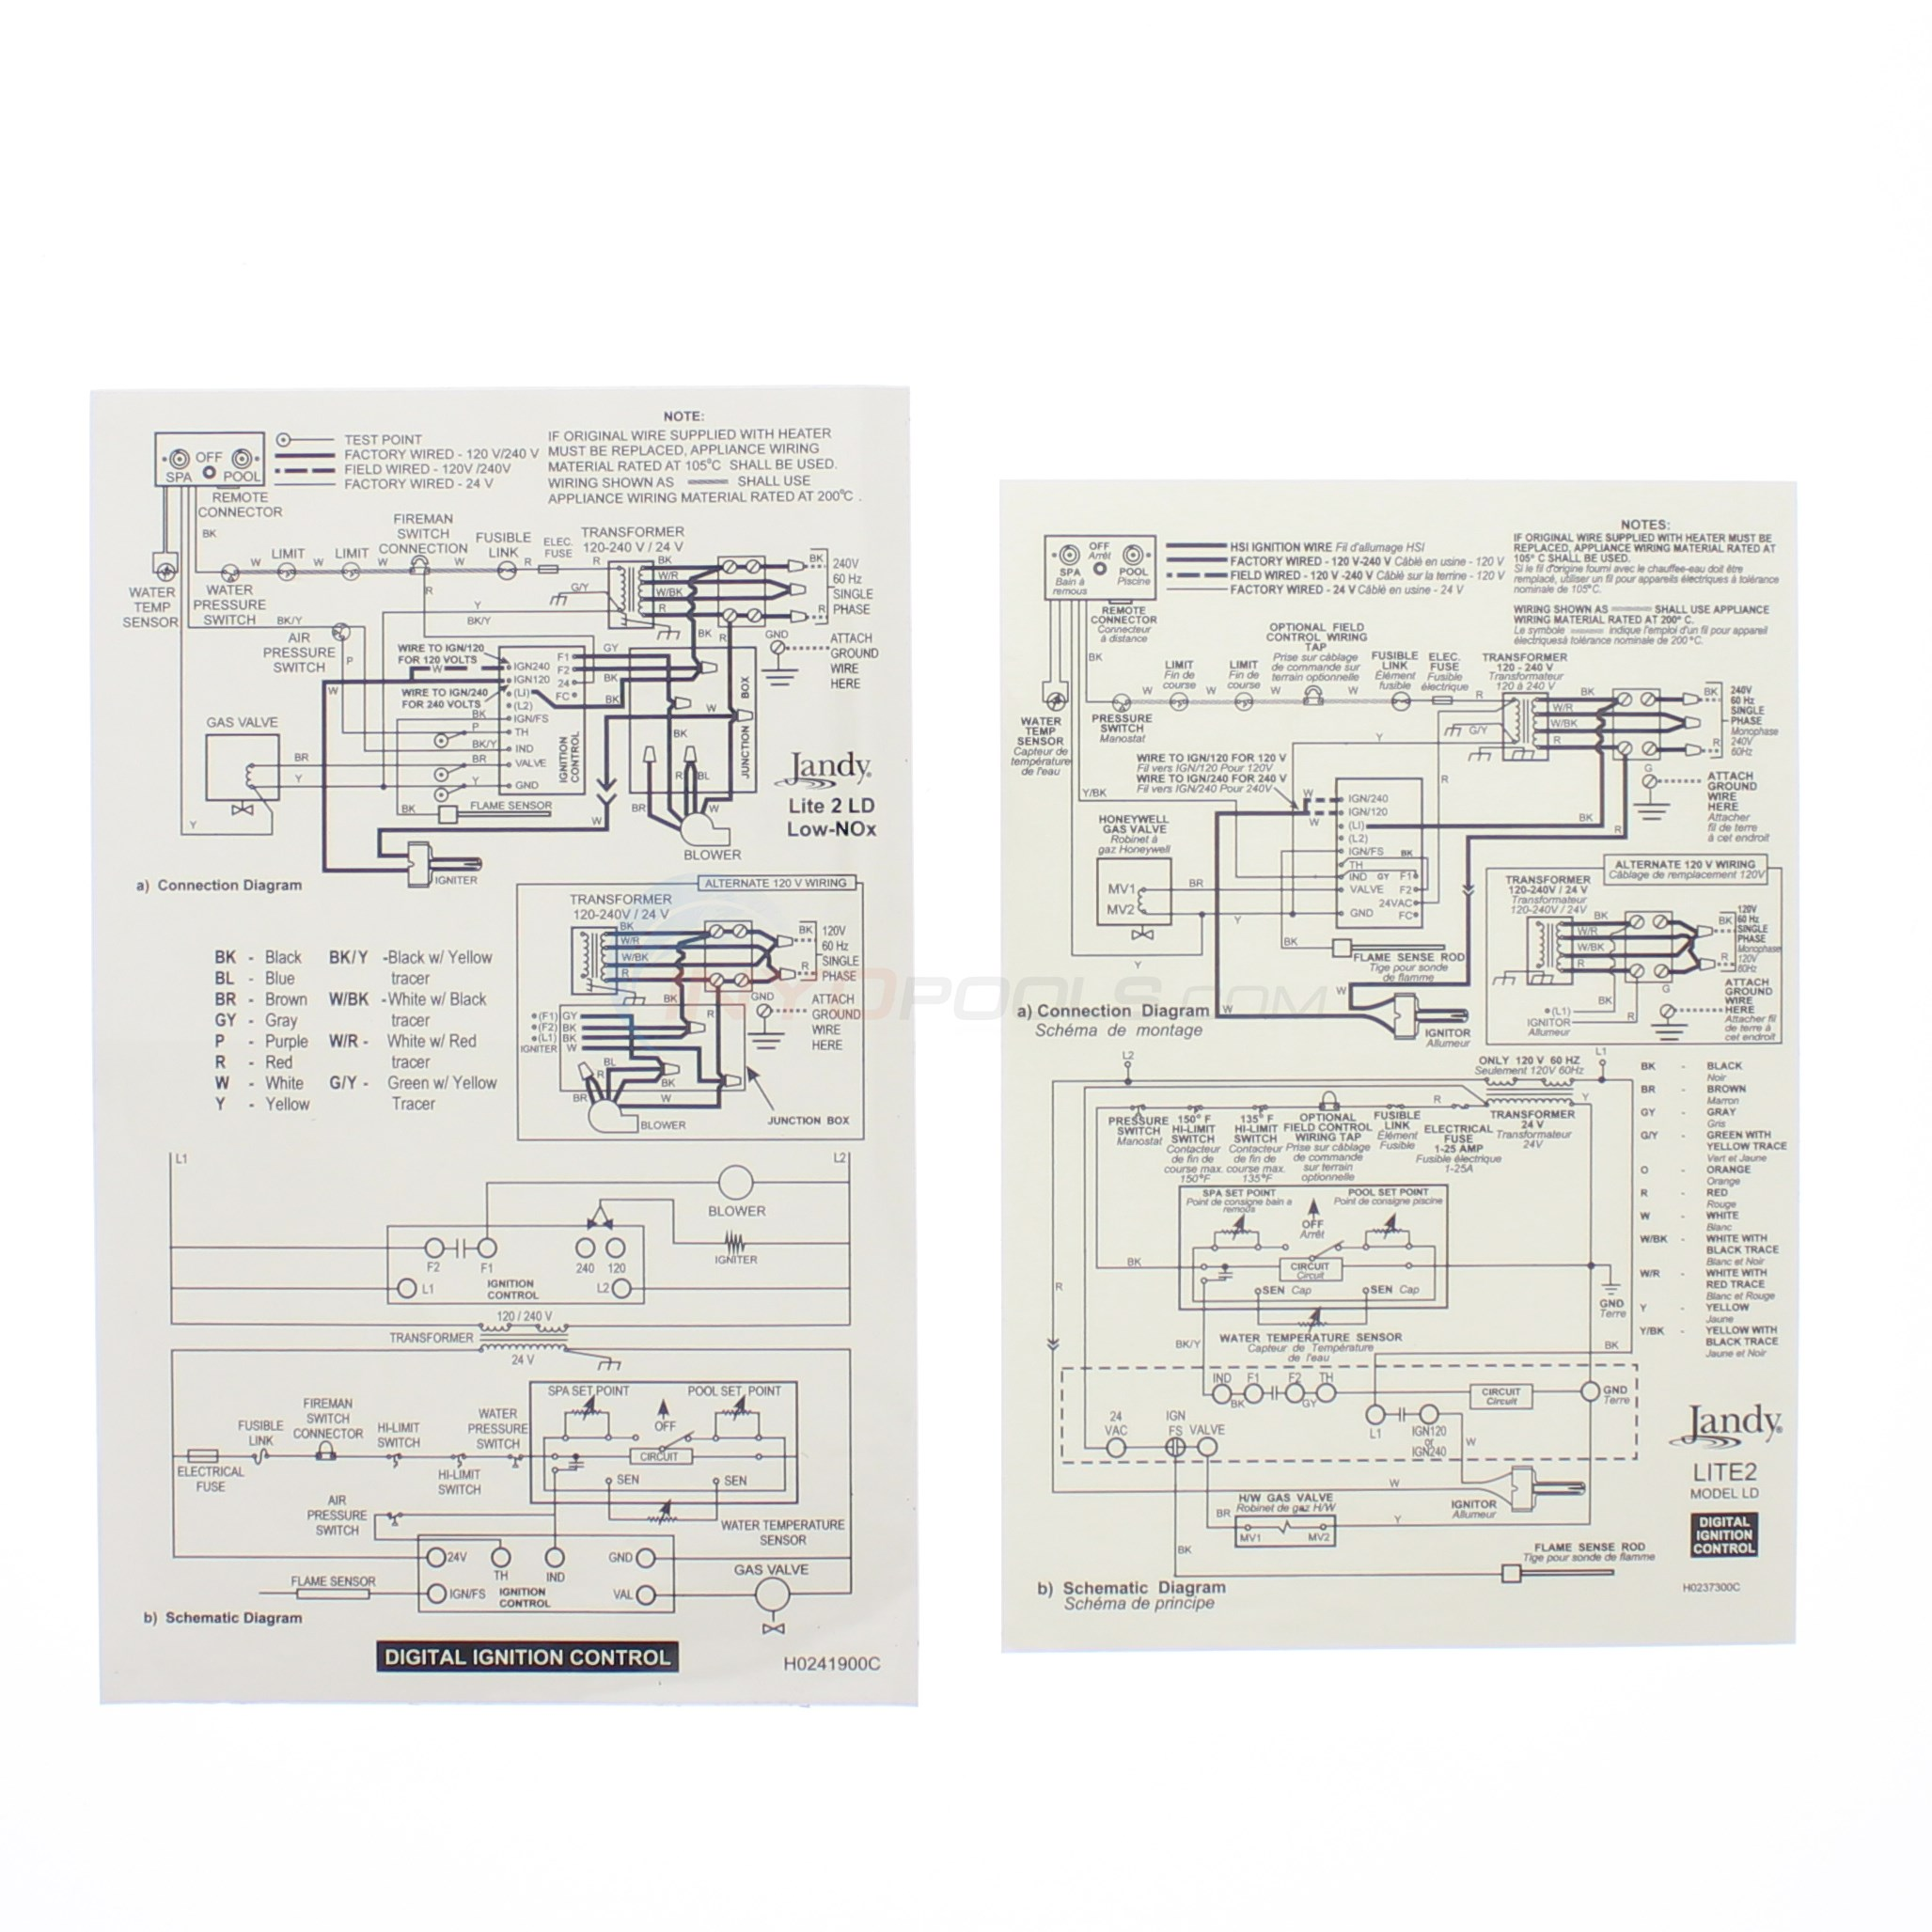 zodiac 6200 0301?format=jpg&scale=both&anchor=middlecenter&autorotate=true&mode=pad&width=650&height=650 zodiac ignition control assembly (r0408100) inyopools com fenwal ignition module wiring diagram at metegol.co